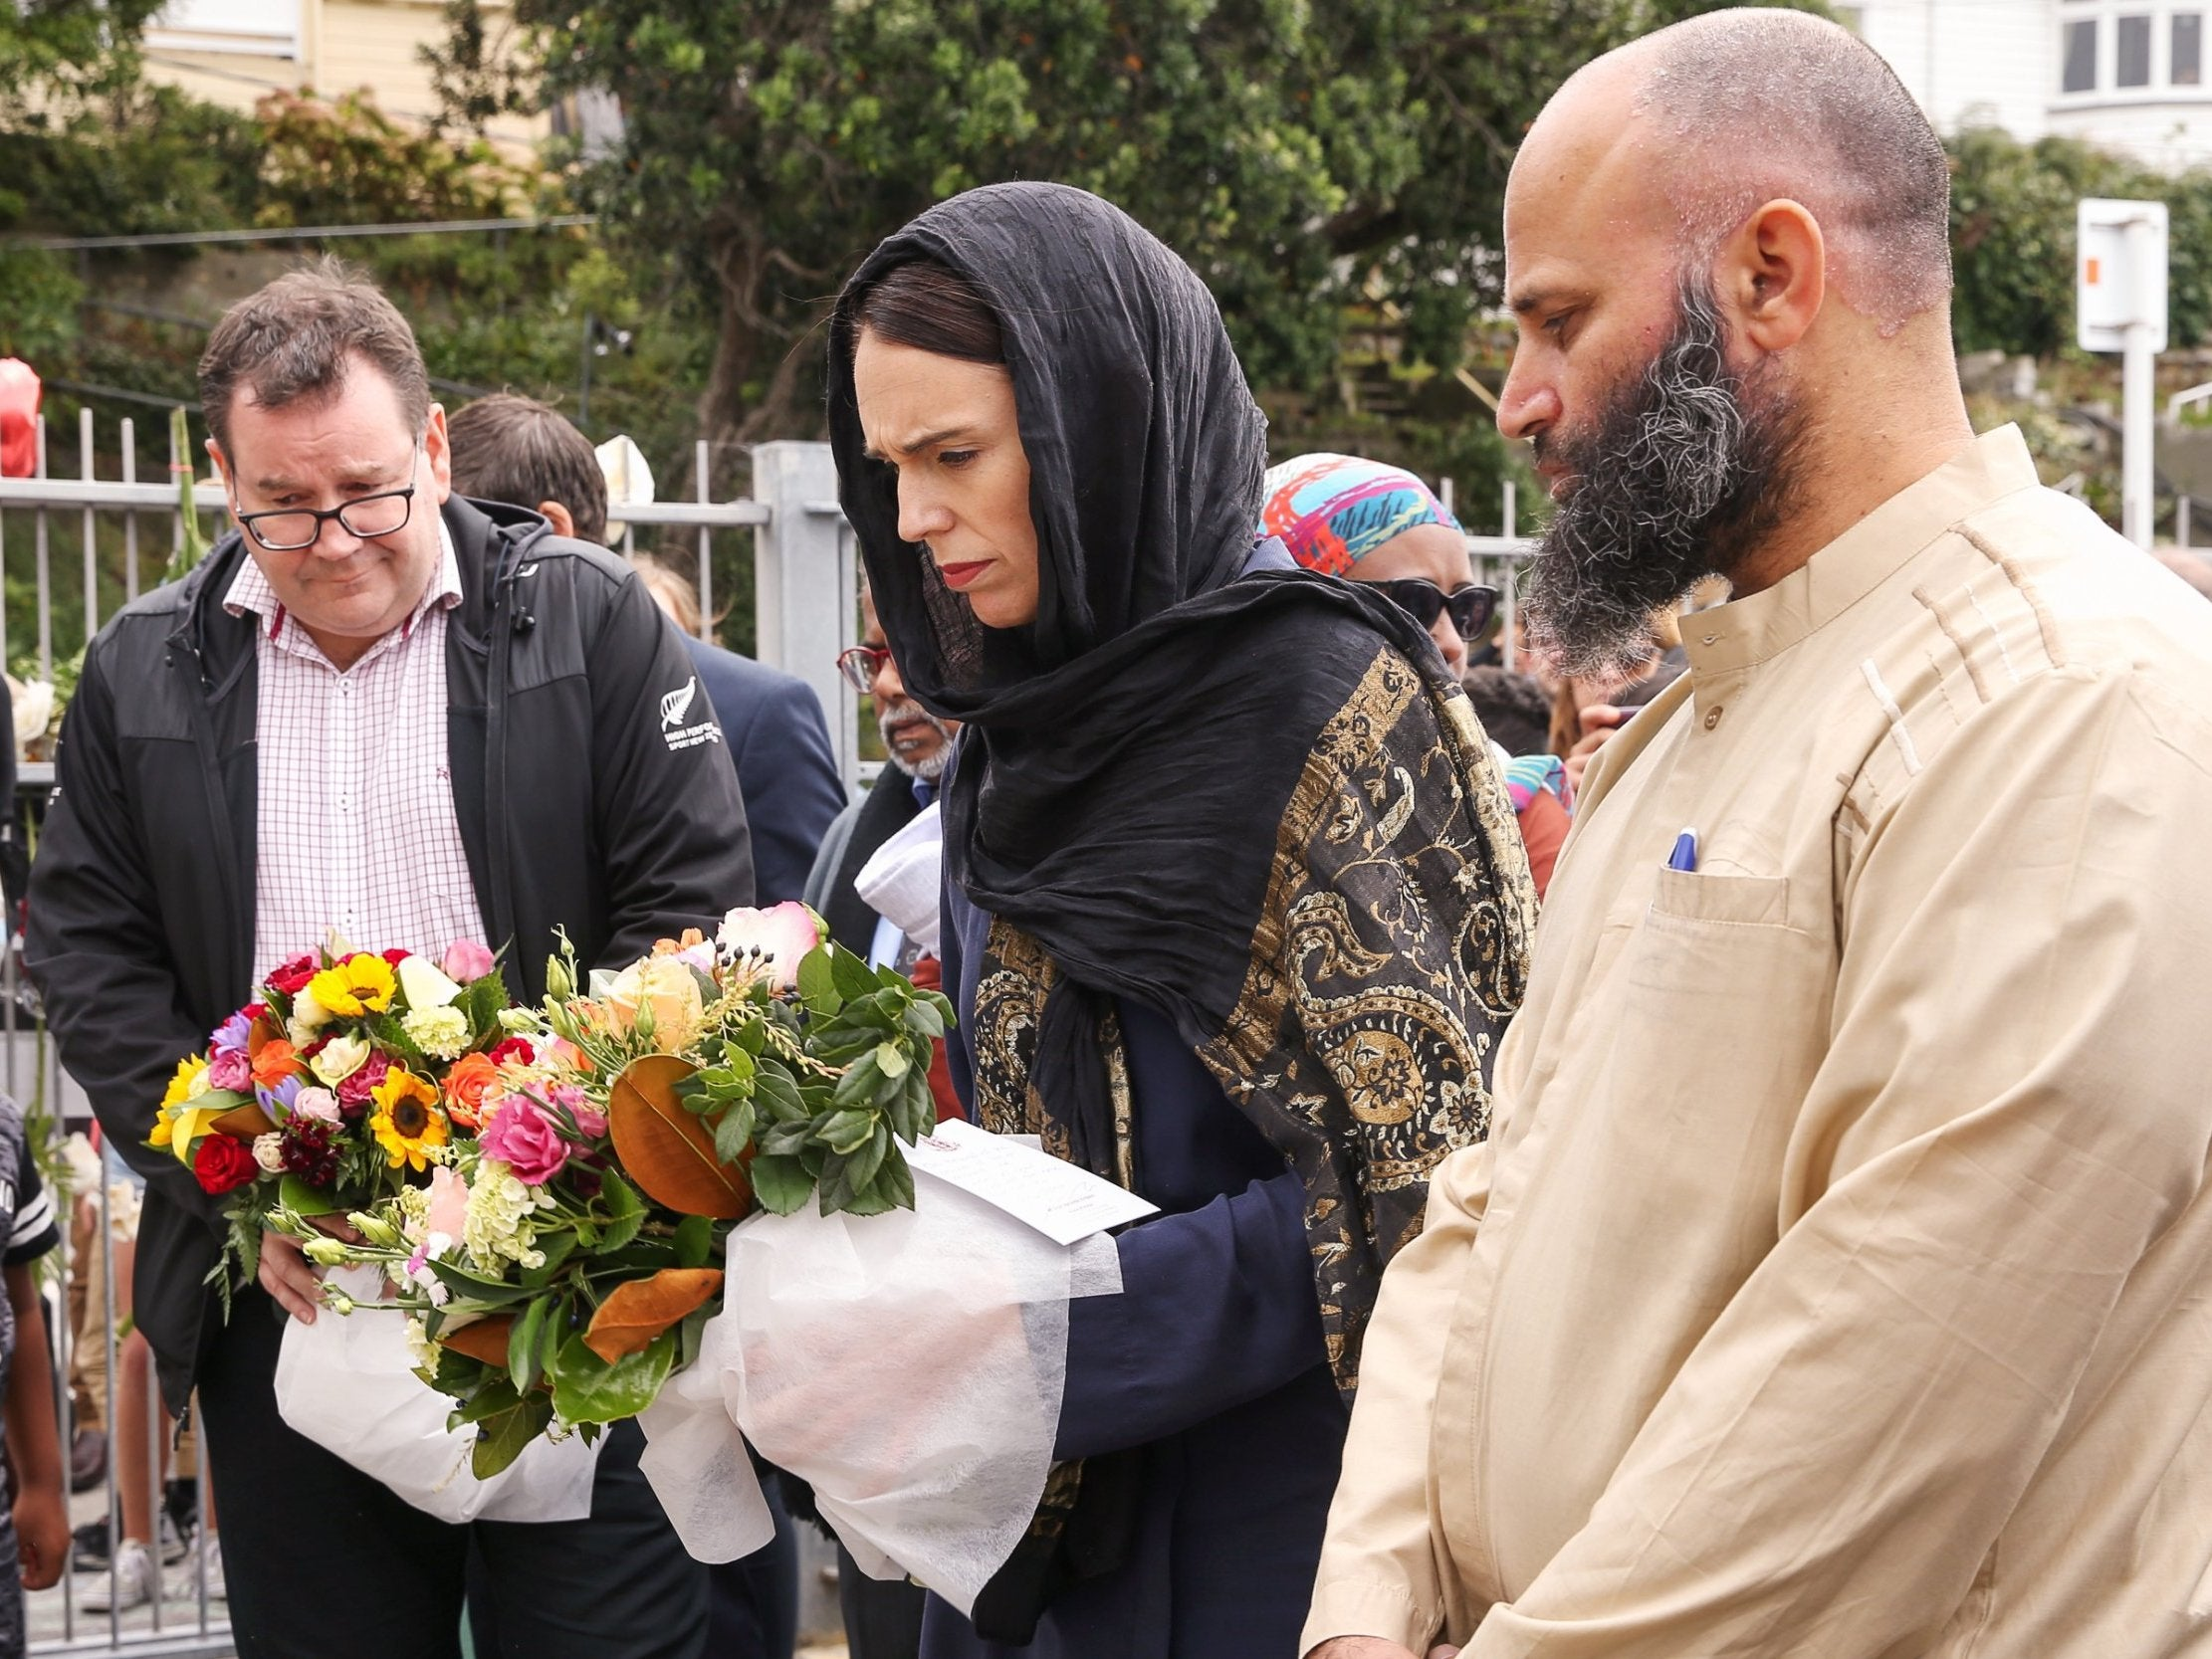 New Zealand shooting: Parliament opens session with reading